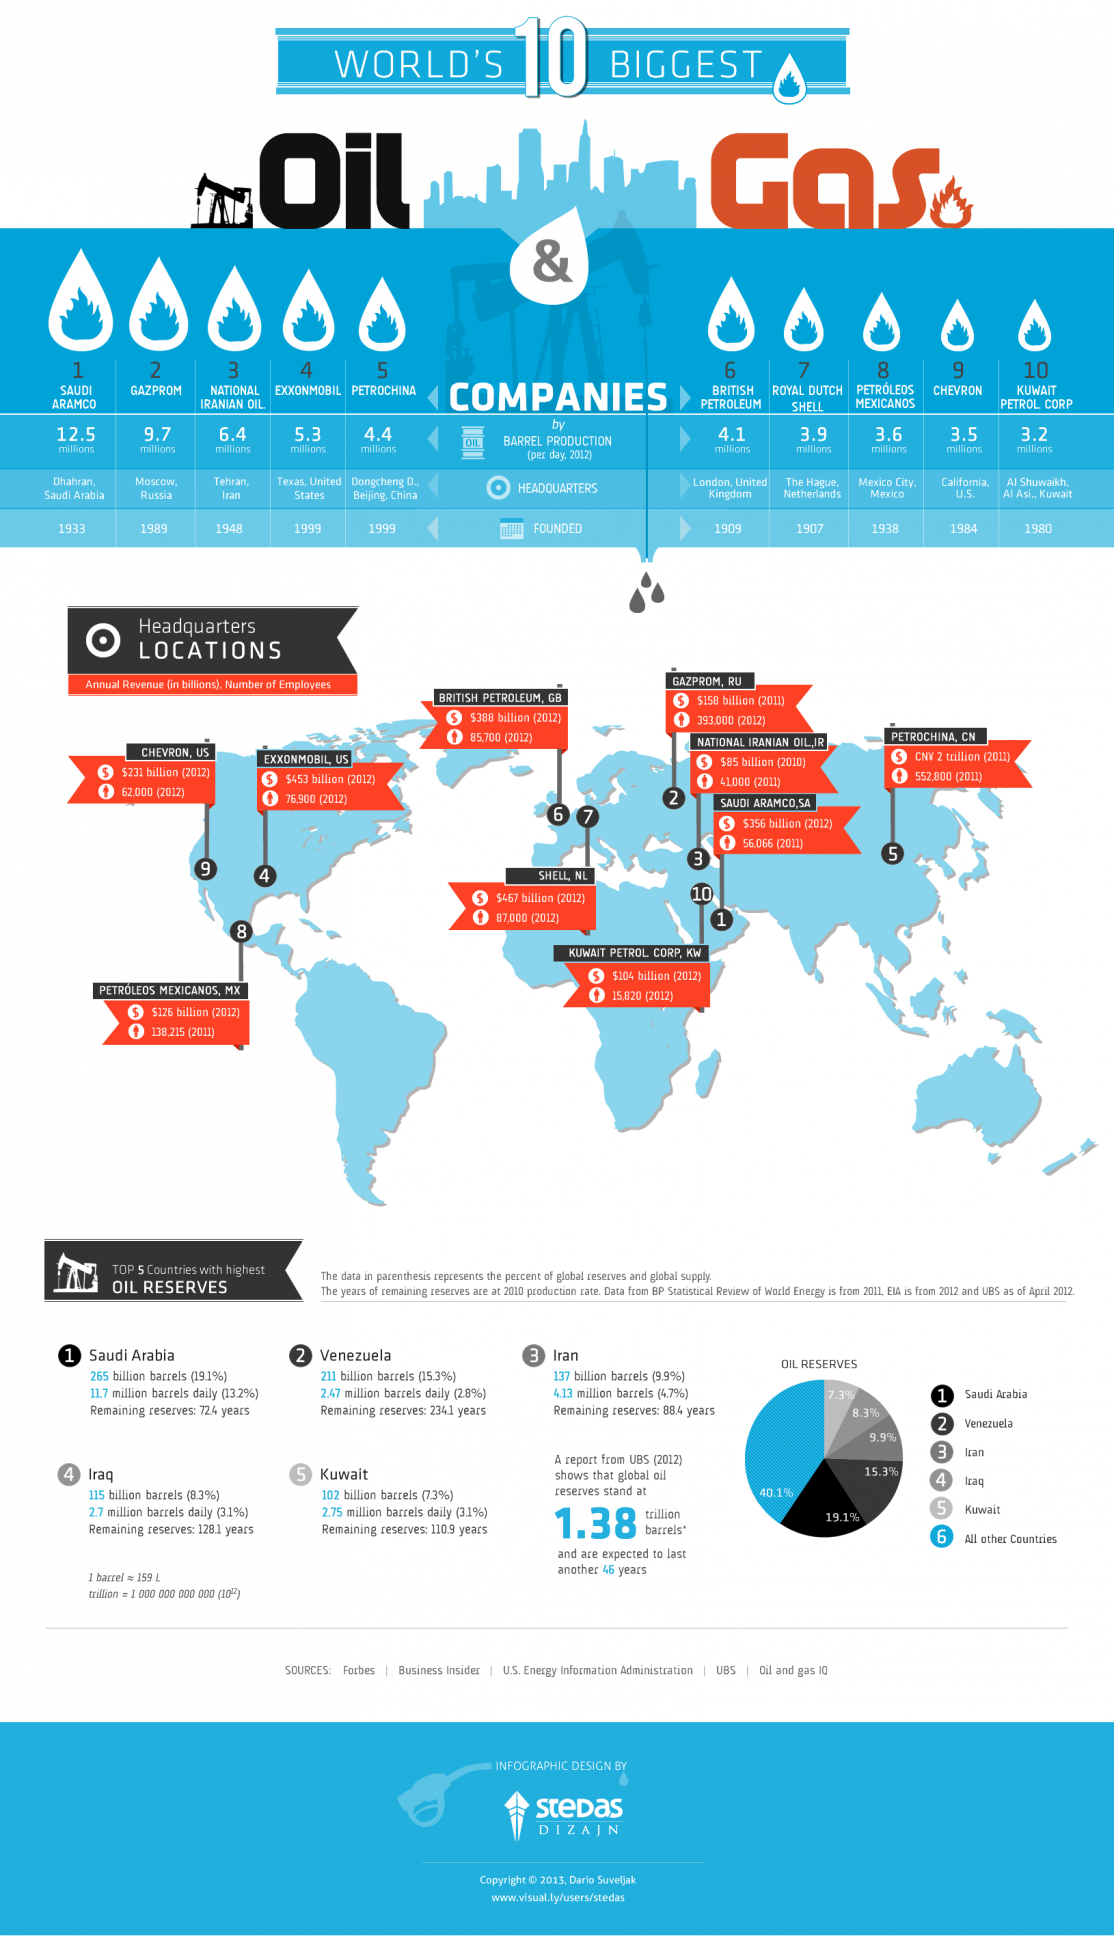 INFOGRAPHIC The ten biggest oil and gas companies